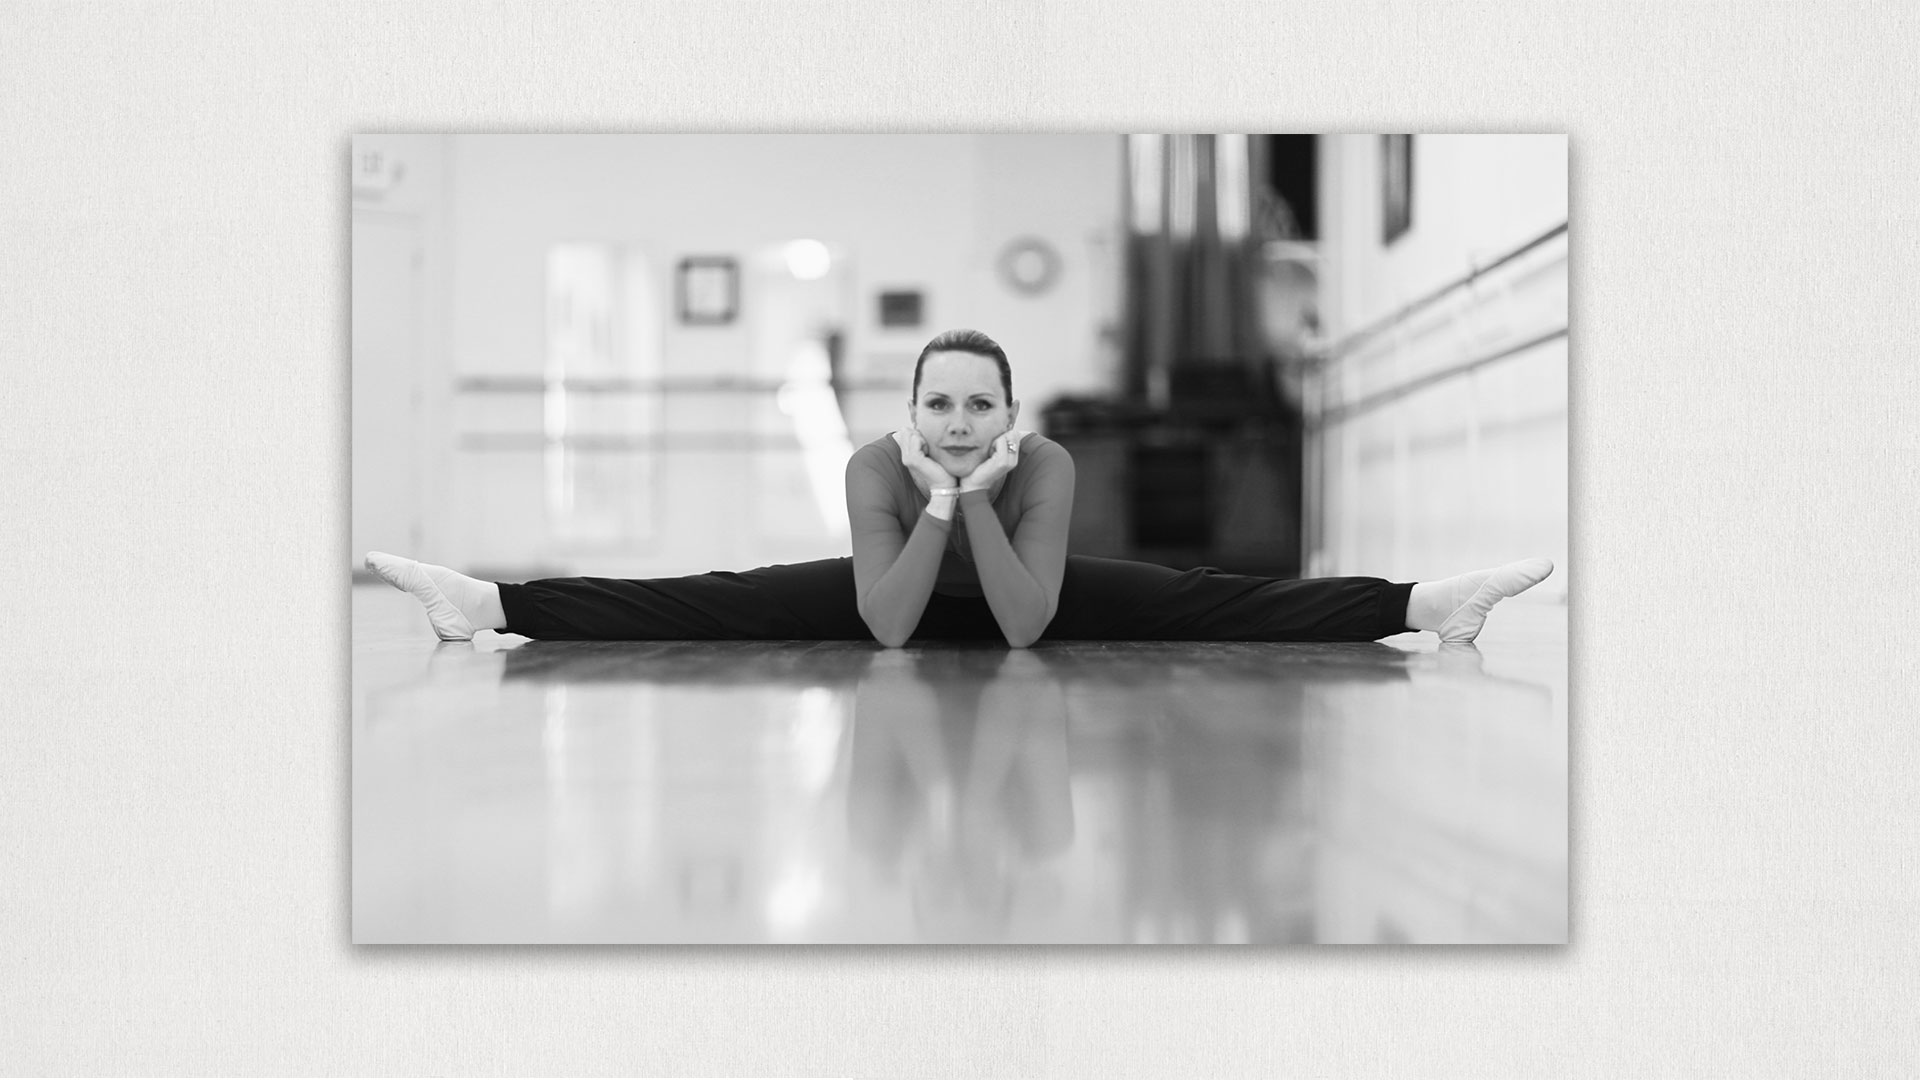 Nikki stretching ballet studio